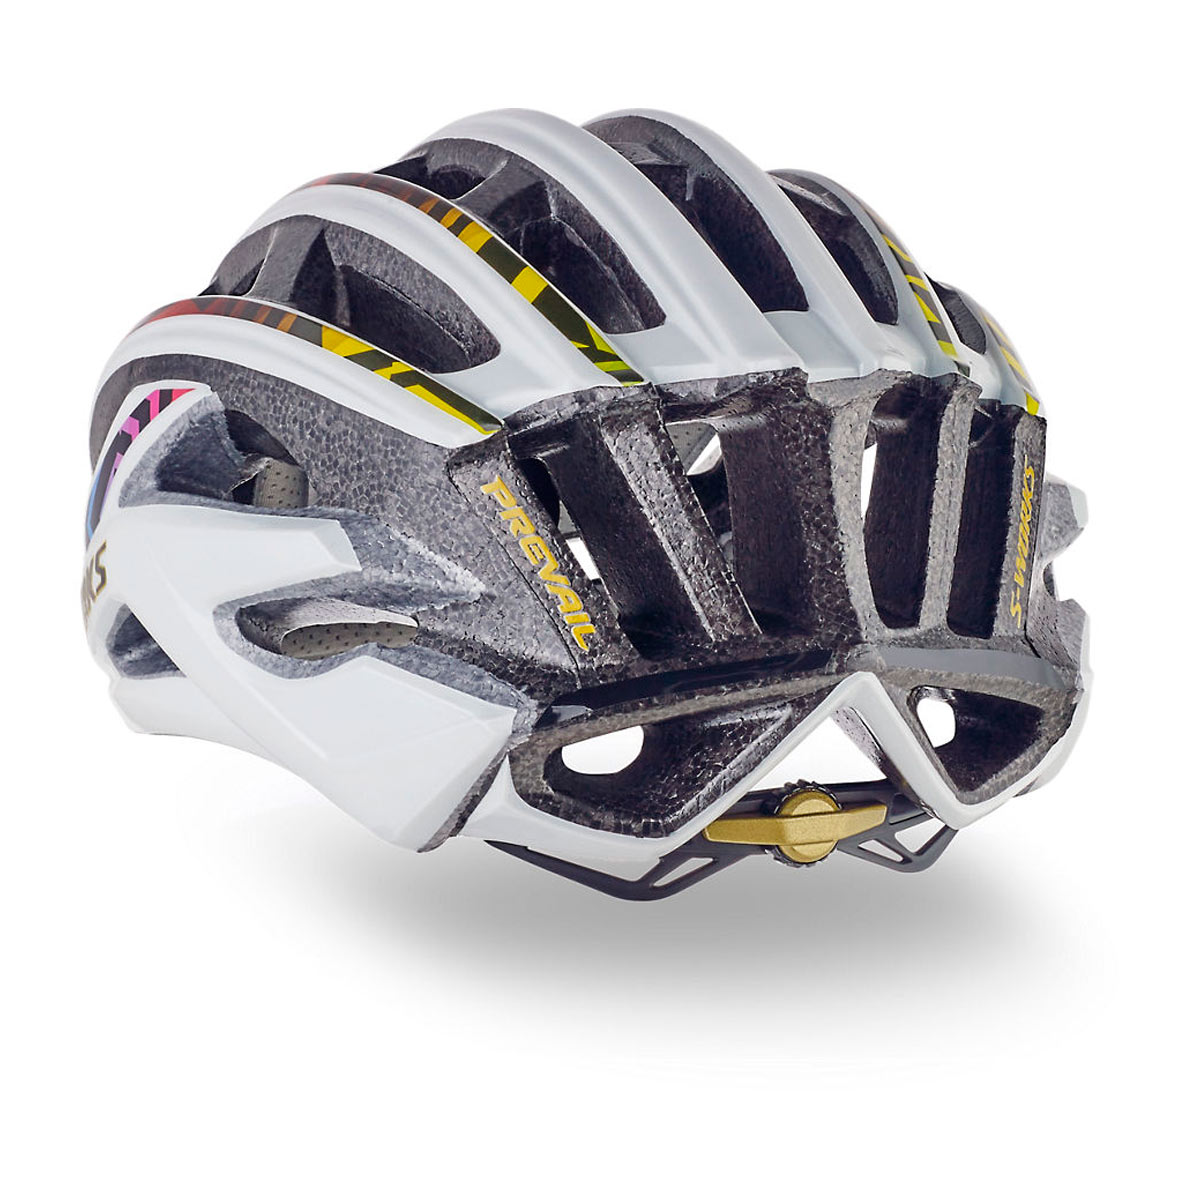 Capacete Specialized S-Works Prevail II Team